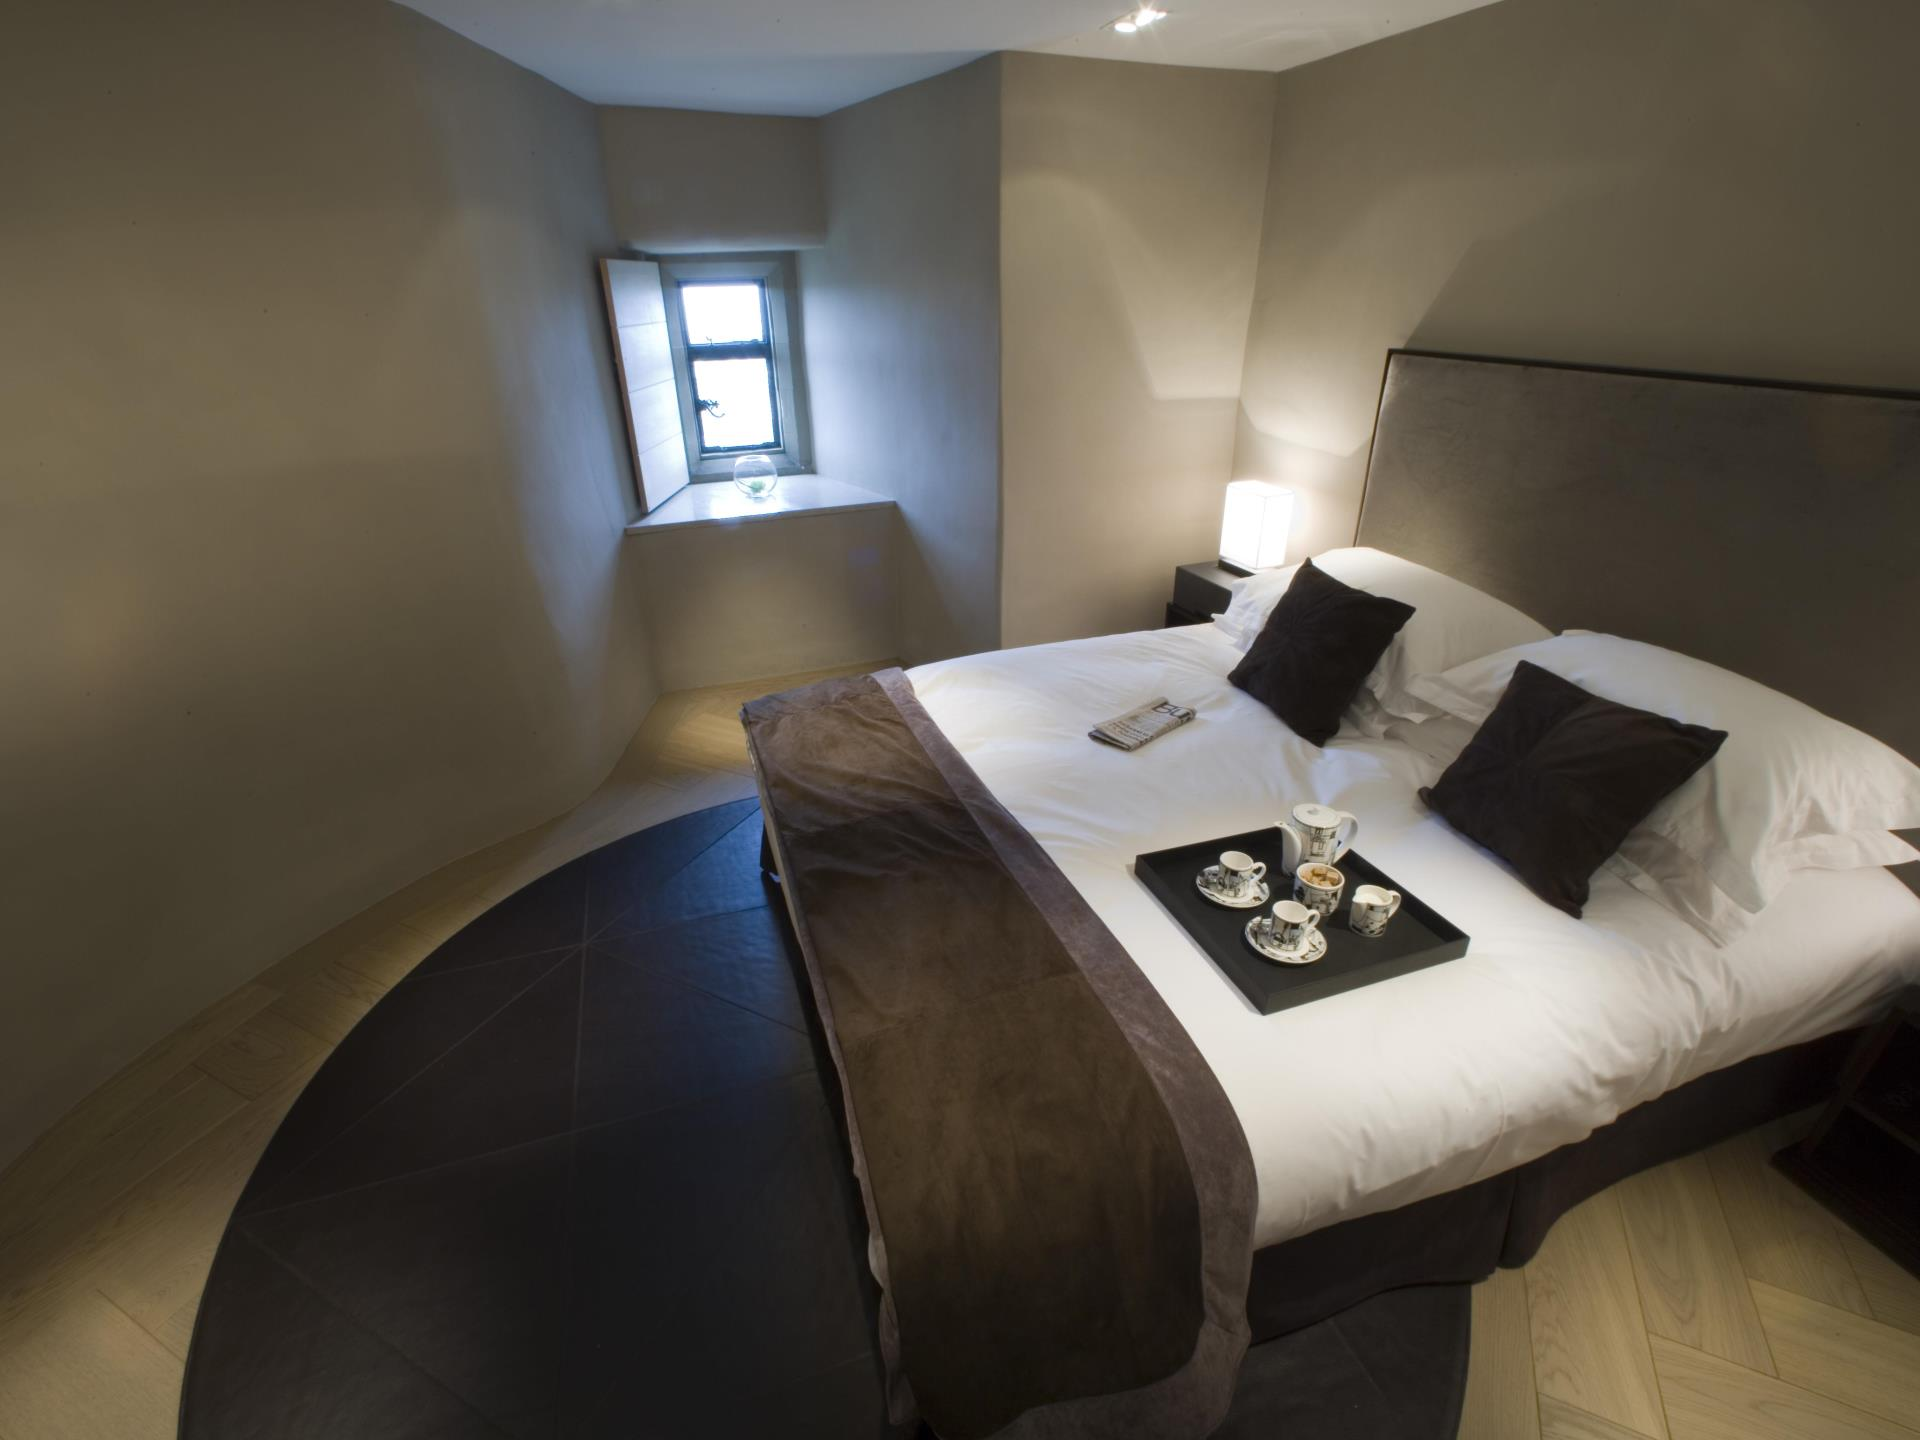 Nest Bedroom, Roch Castle, Pembrokeshire